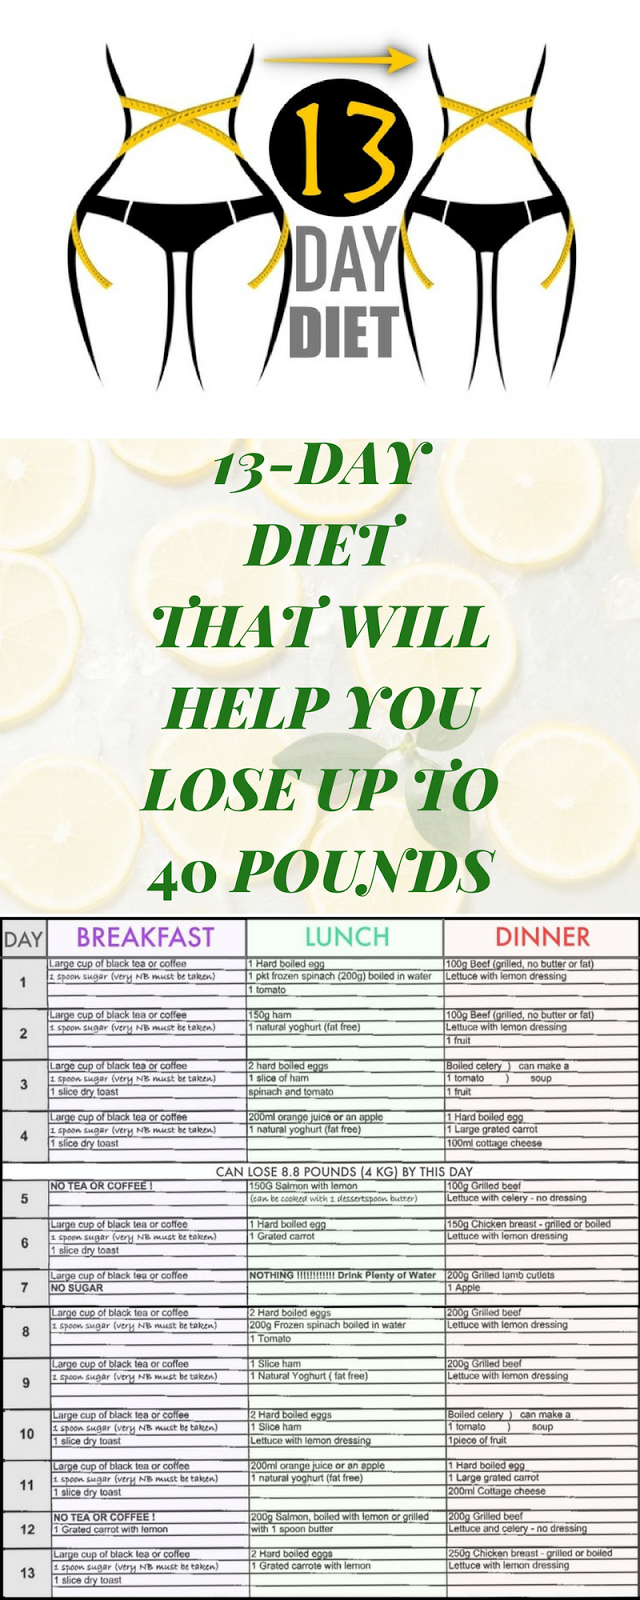 A 13-DAY DIET THAT WILL HELP YOU LOSE UP TO 40 POUNDS